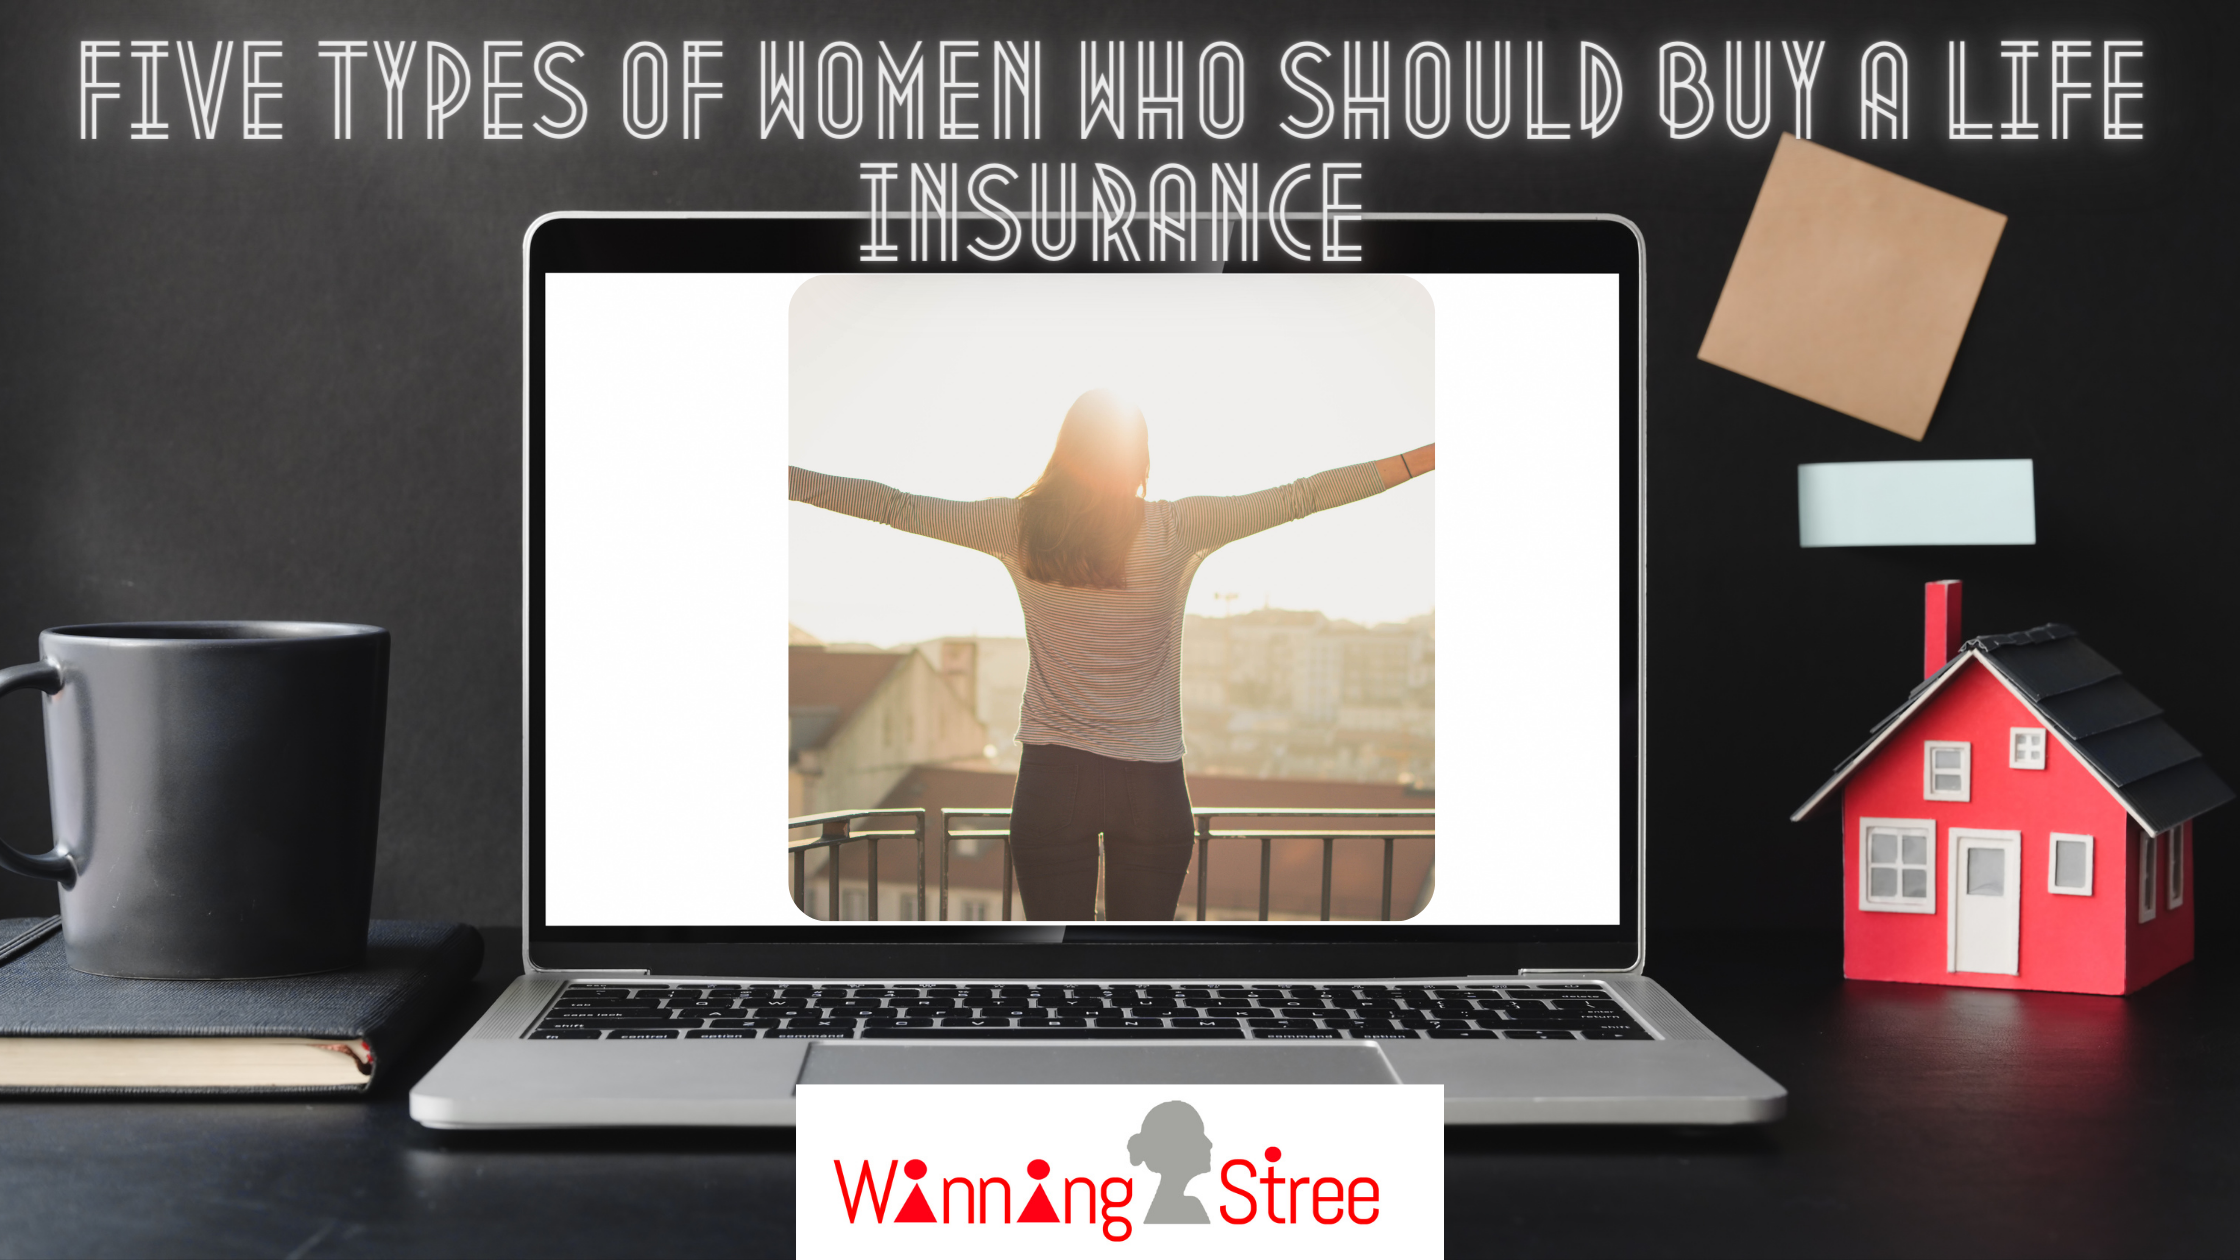 WHY WOMEN NEED LIFE INSURANCE?